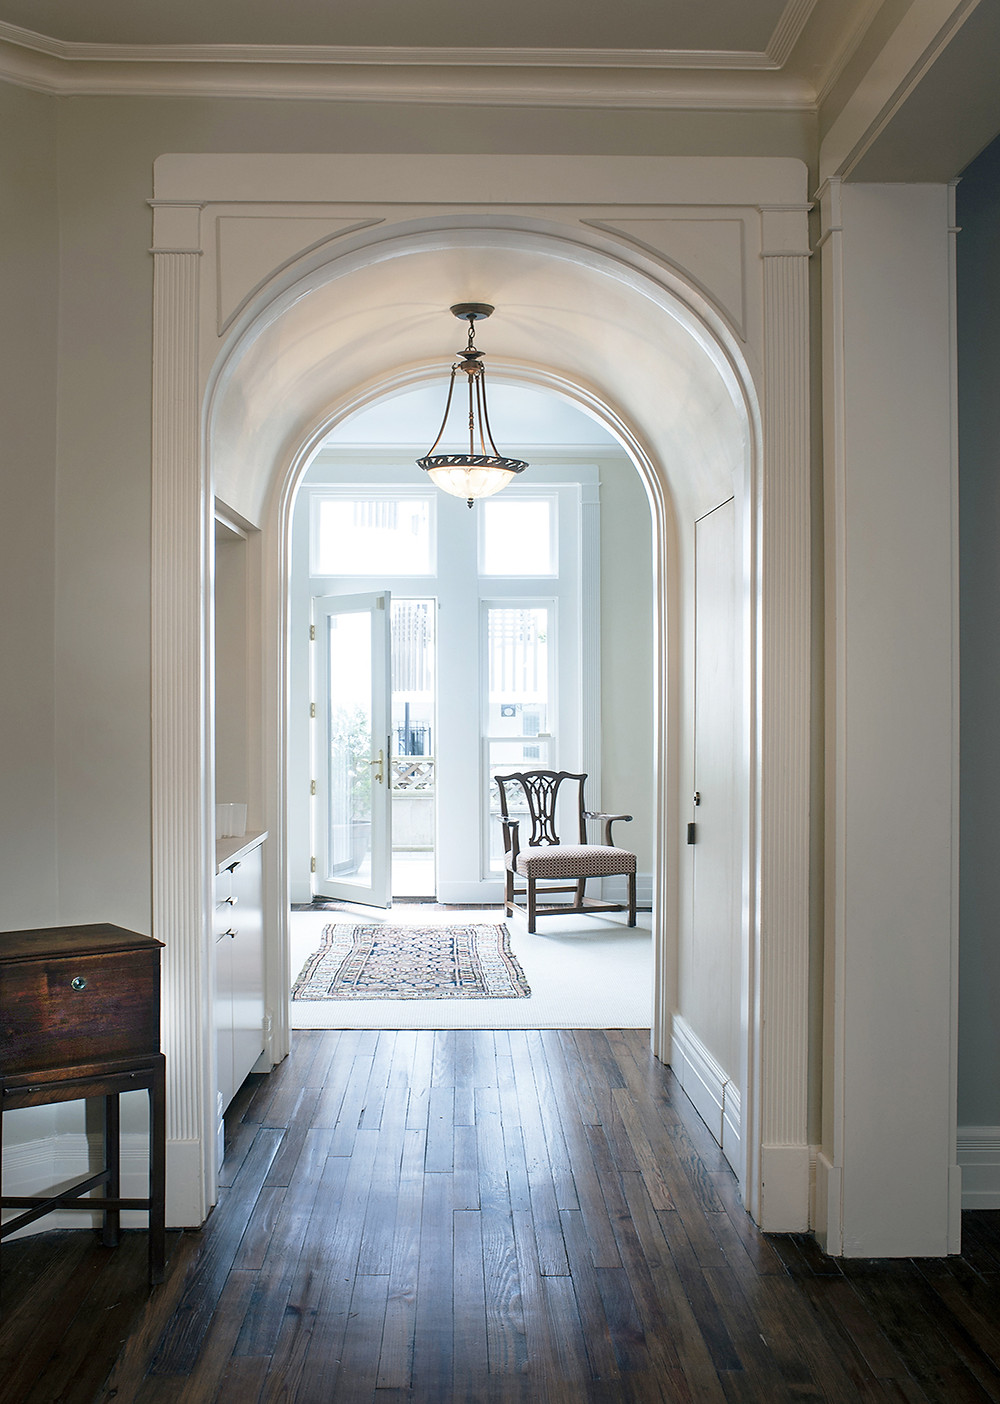 Beautiful arched hallway with pendant light and original wood floors.